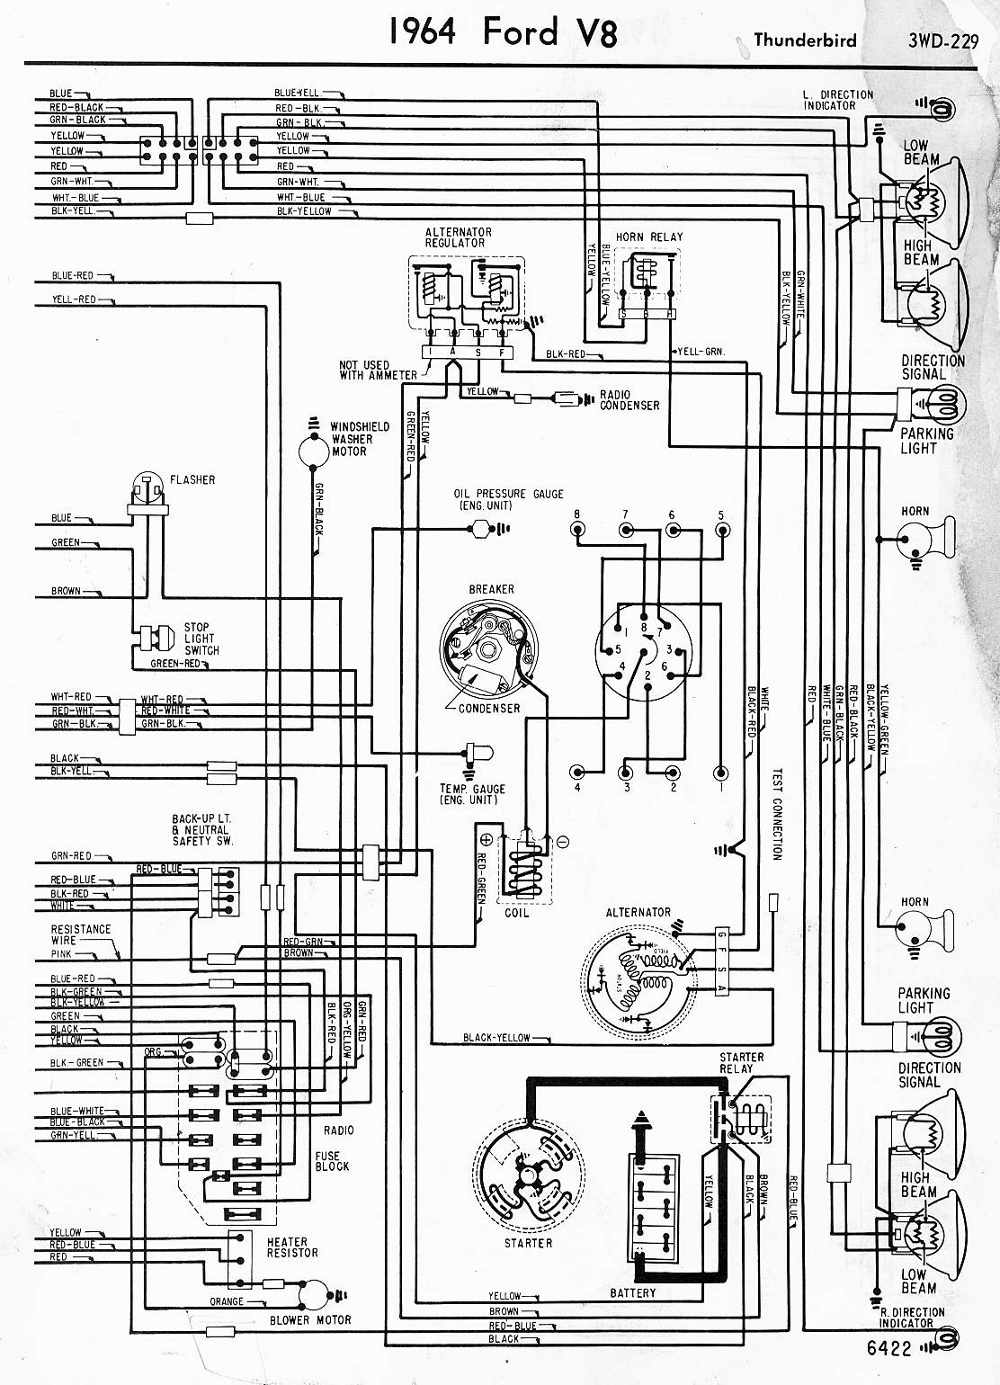 68 Corvette Dash Wiring Diagram Free Download Library 1967 Ford F100 Schematic 1000x1385 Diagrams Software Car Electrical Schematics